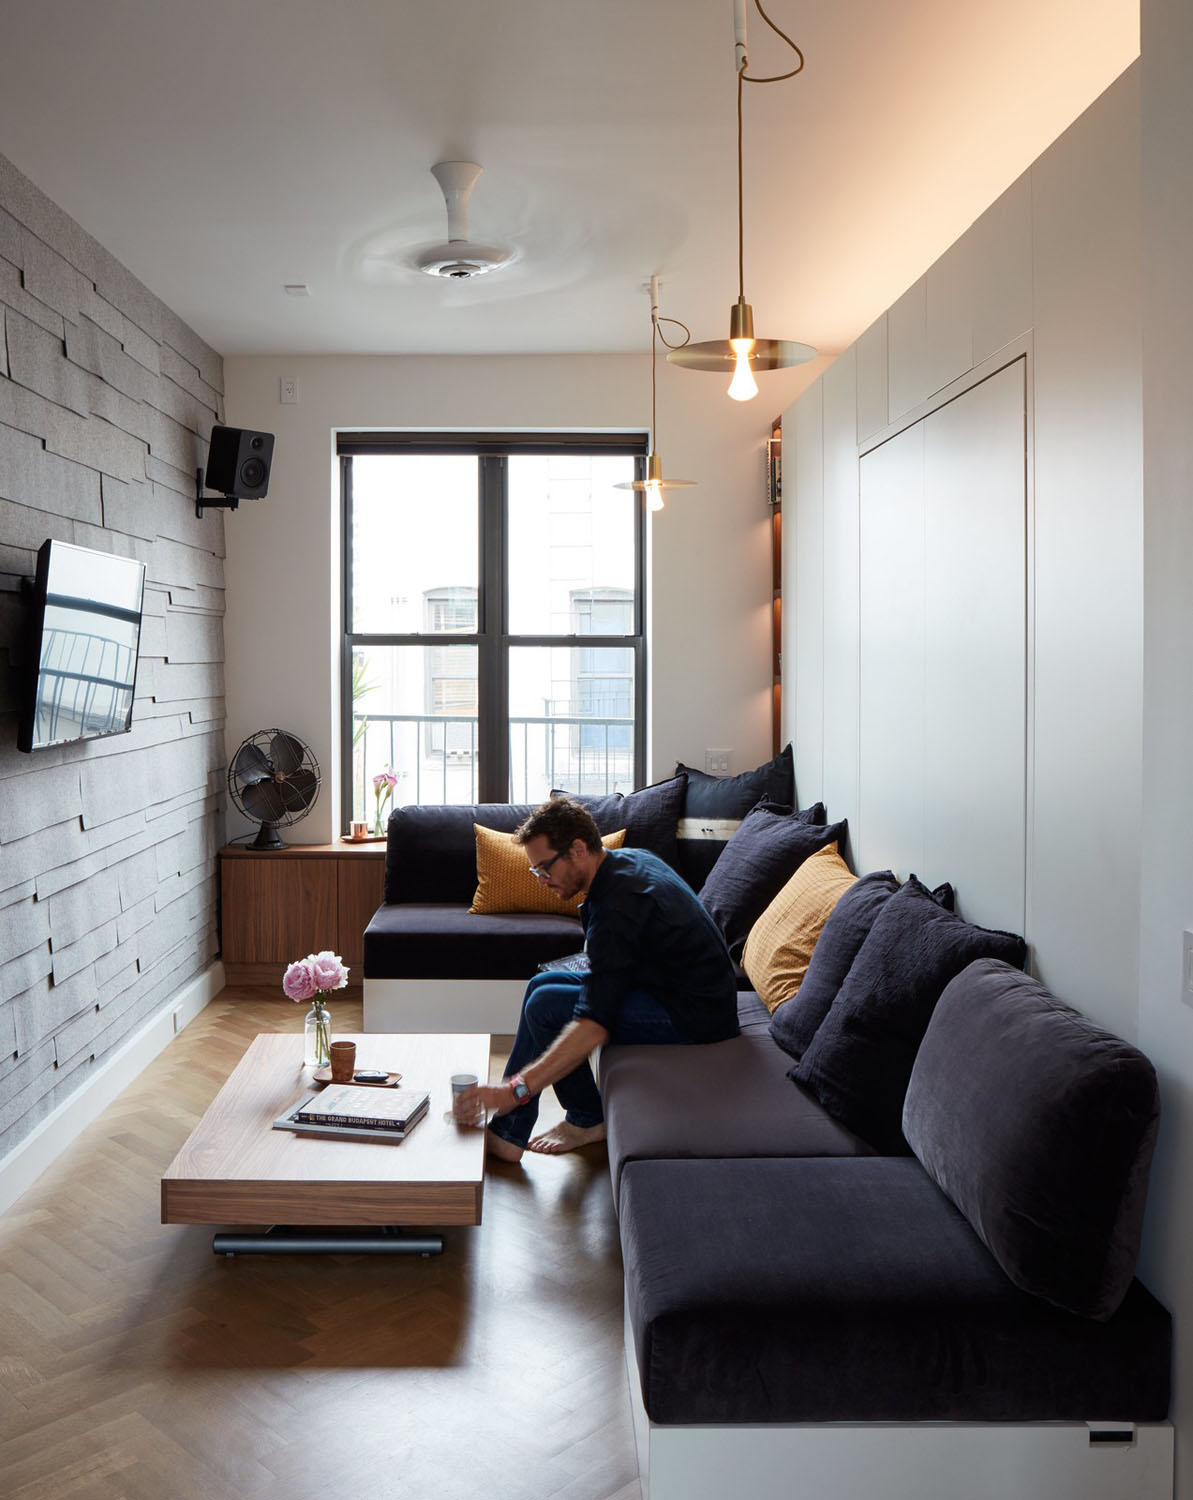 Interior Design For Living Room For Small Space: LifeEdited-NYC-Smart-Micro-Apartment_2